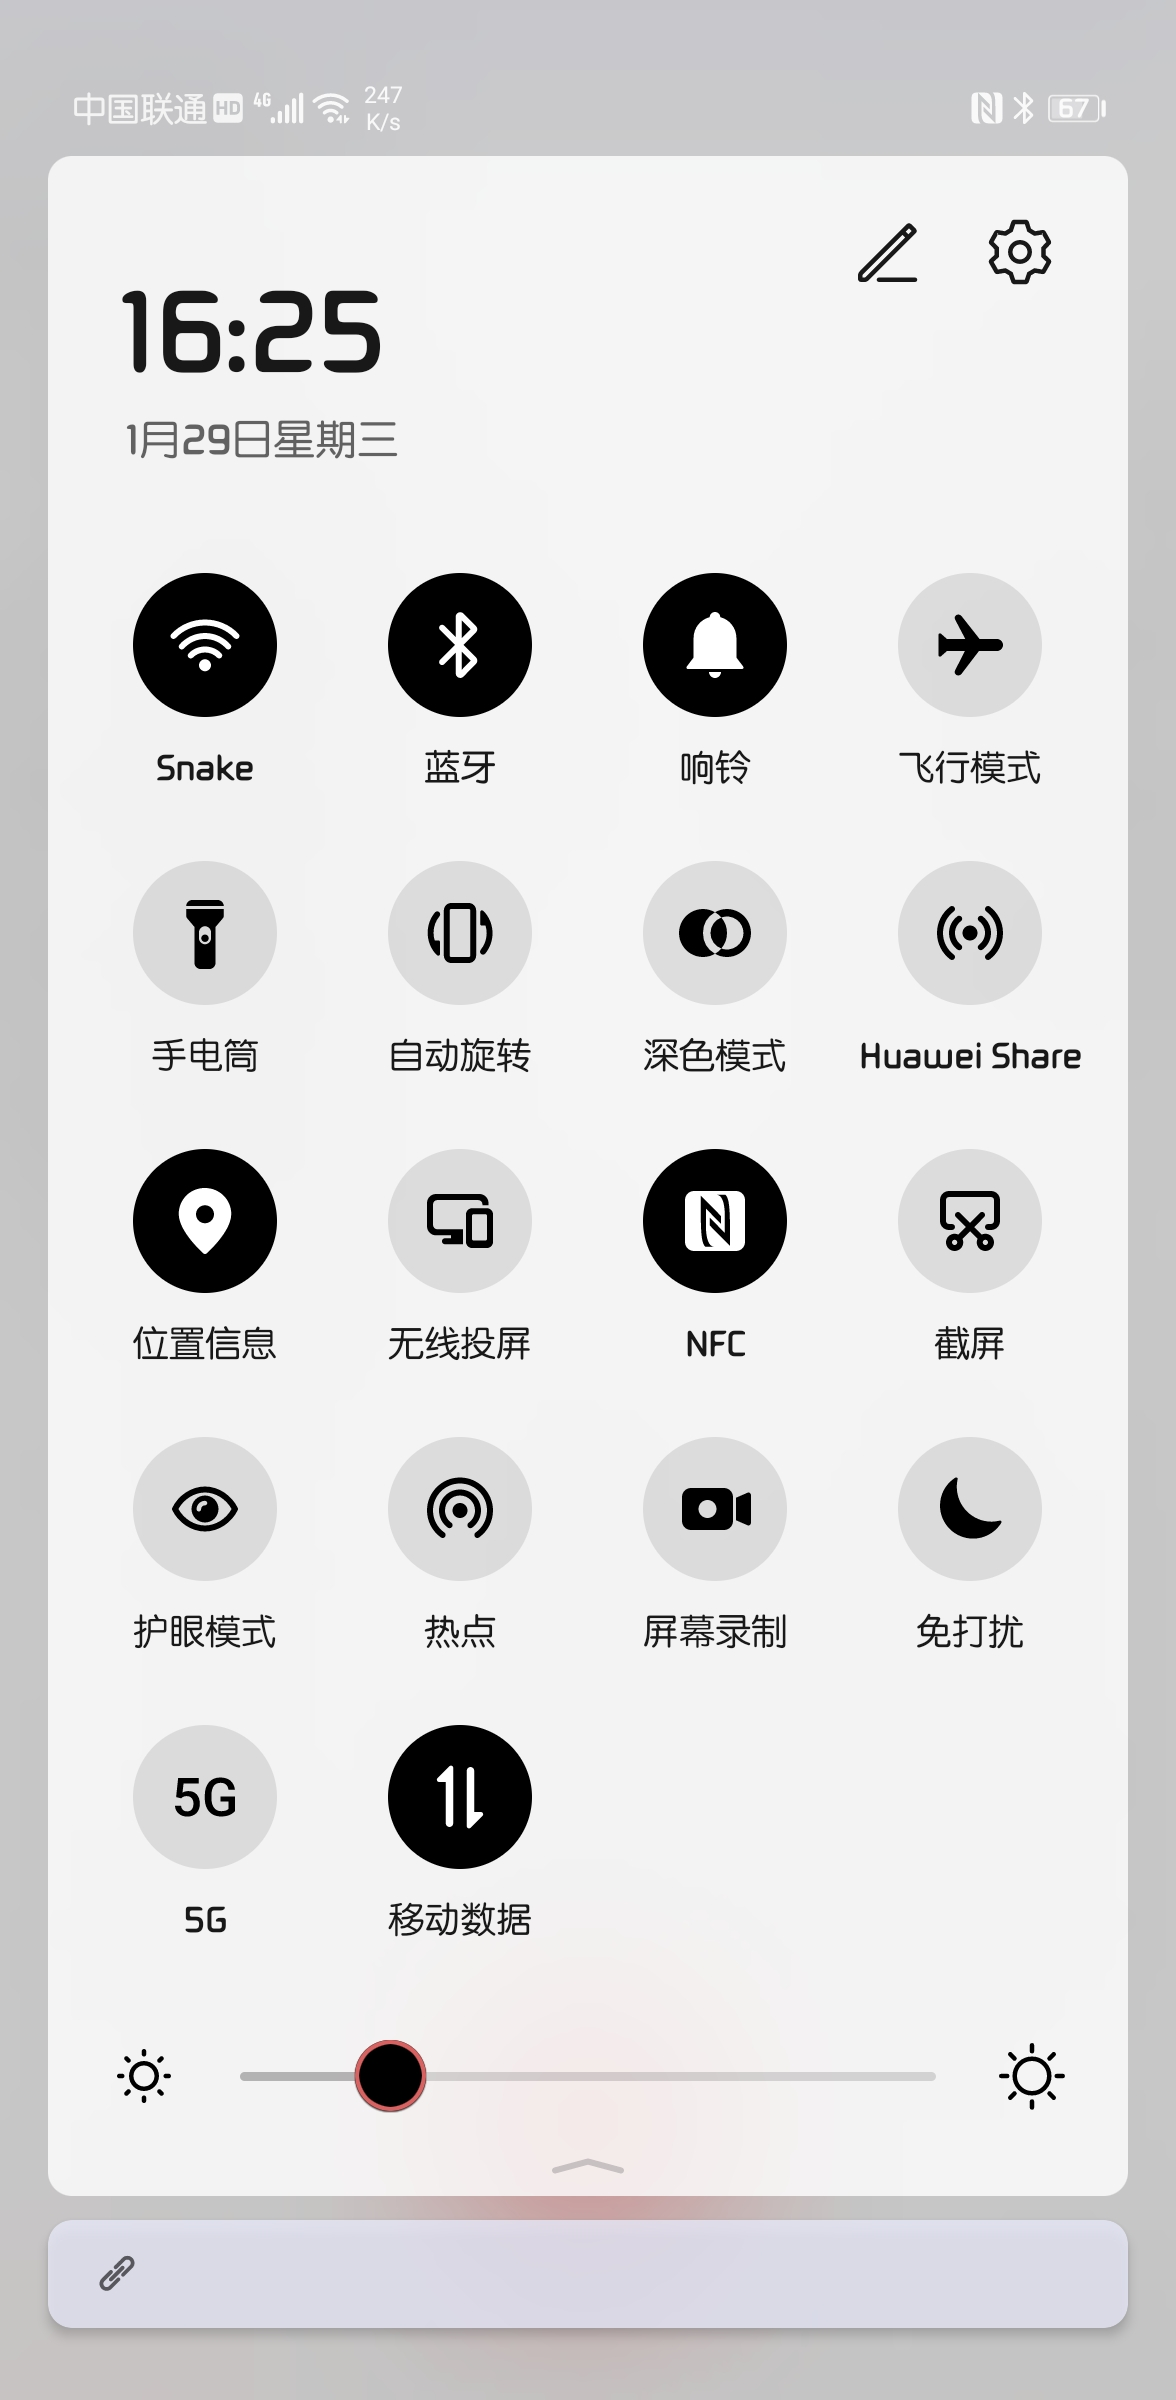 Screenshot_20200129_162543_com.huawei.contacts.jpg